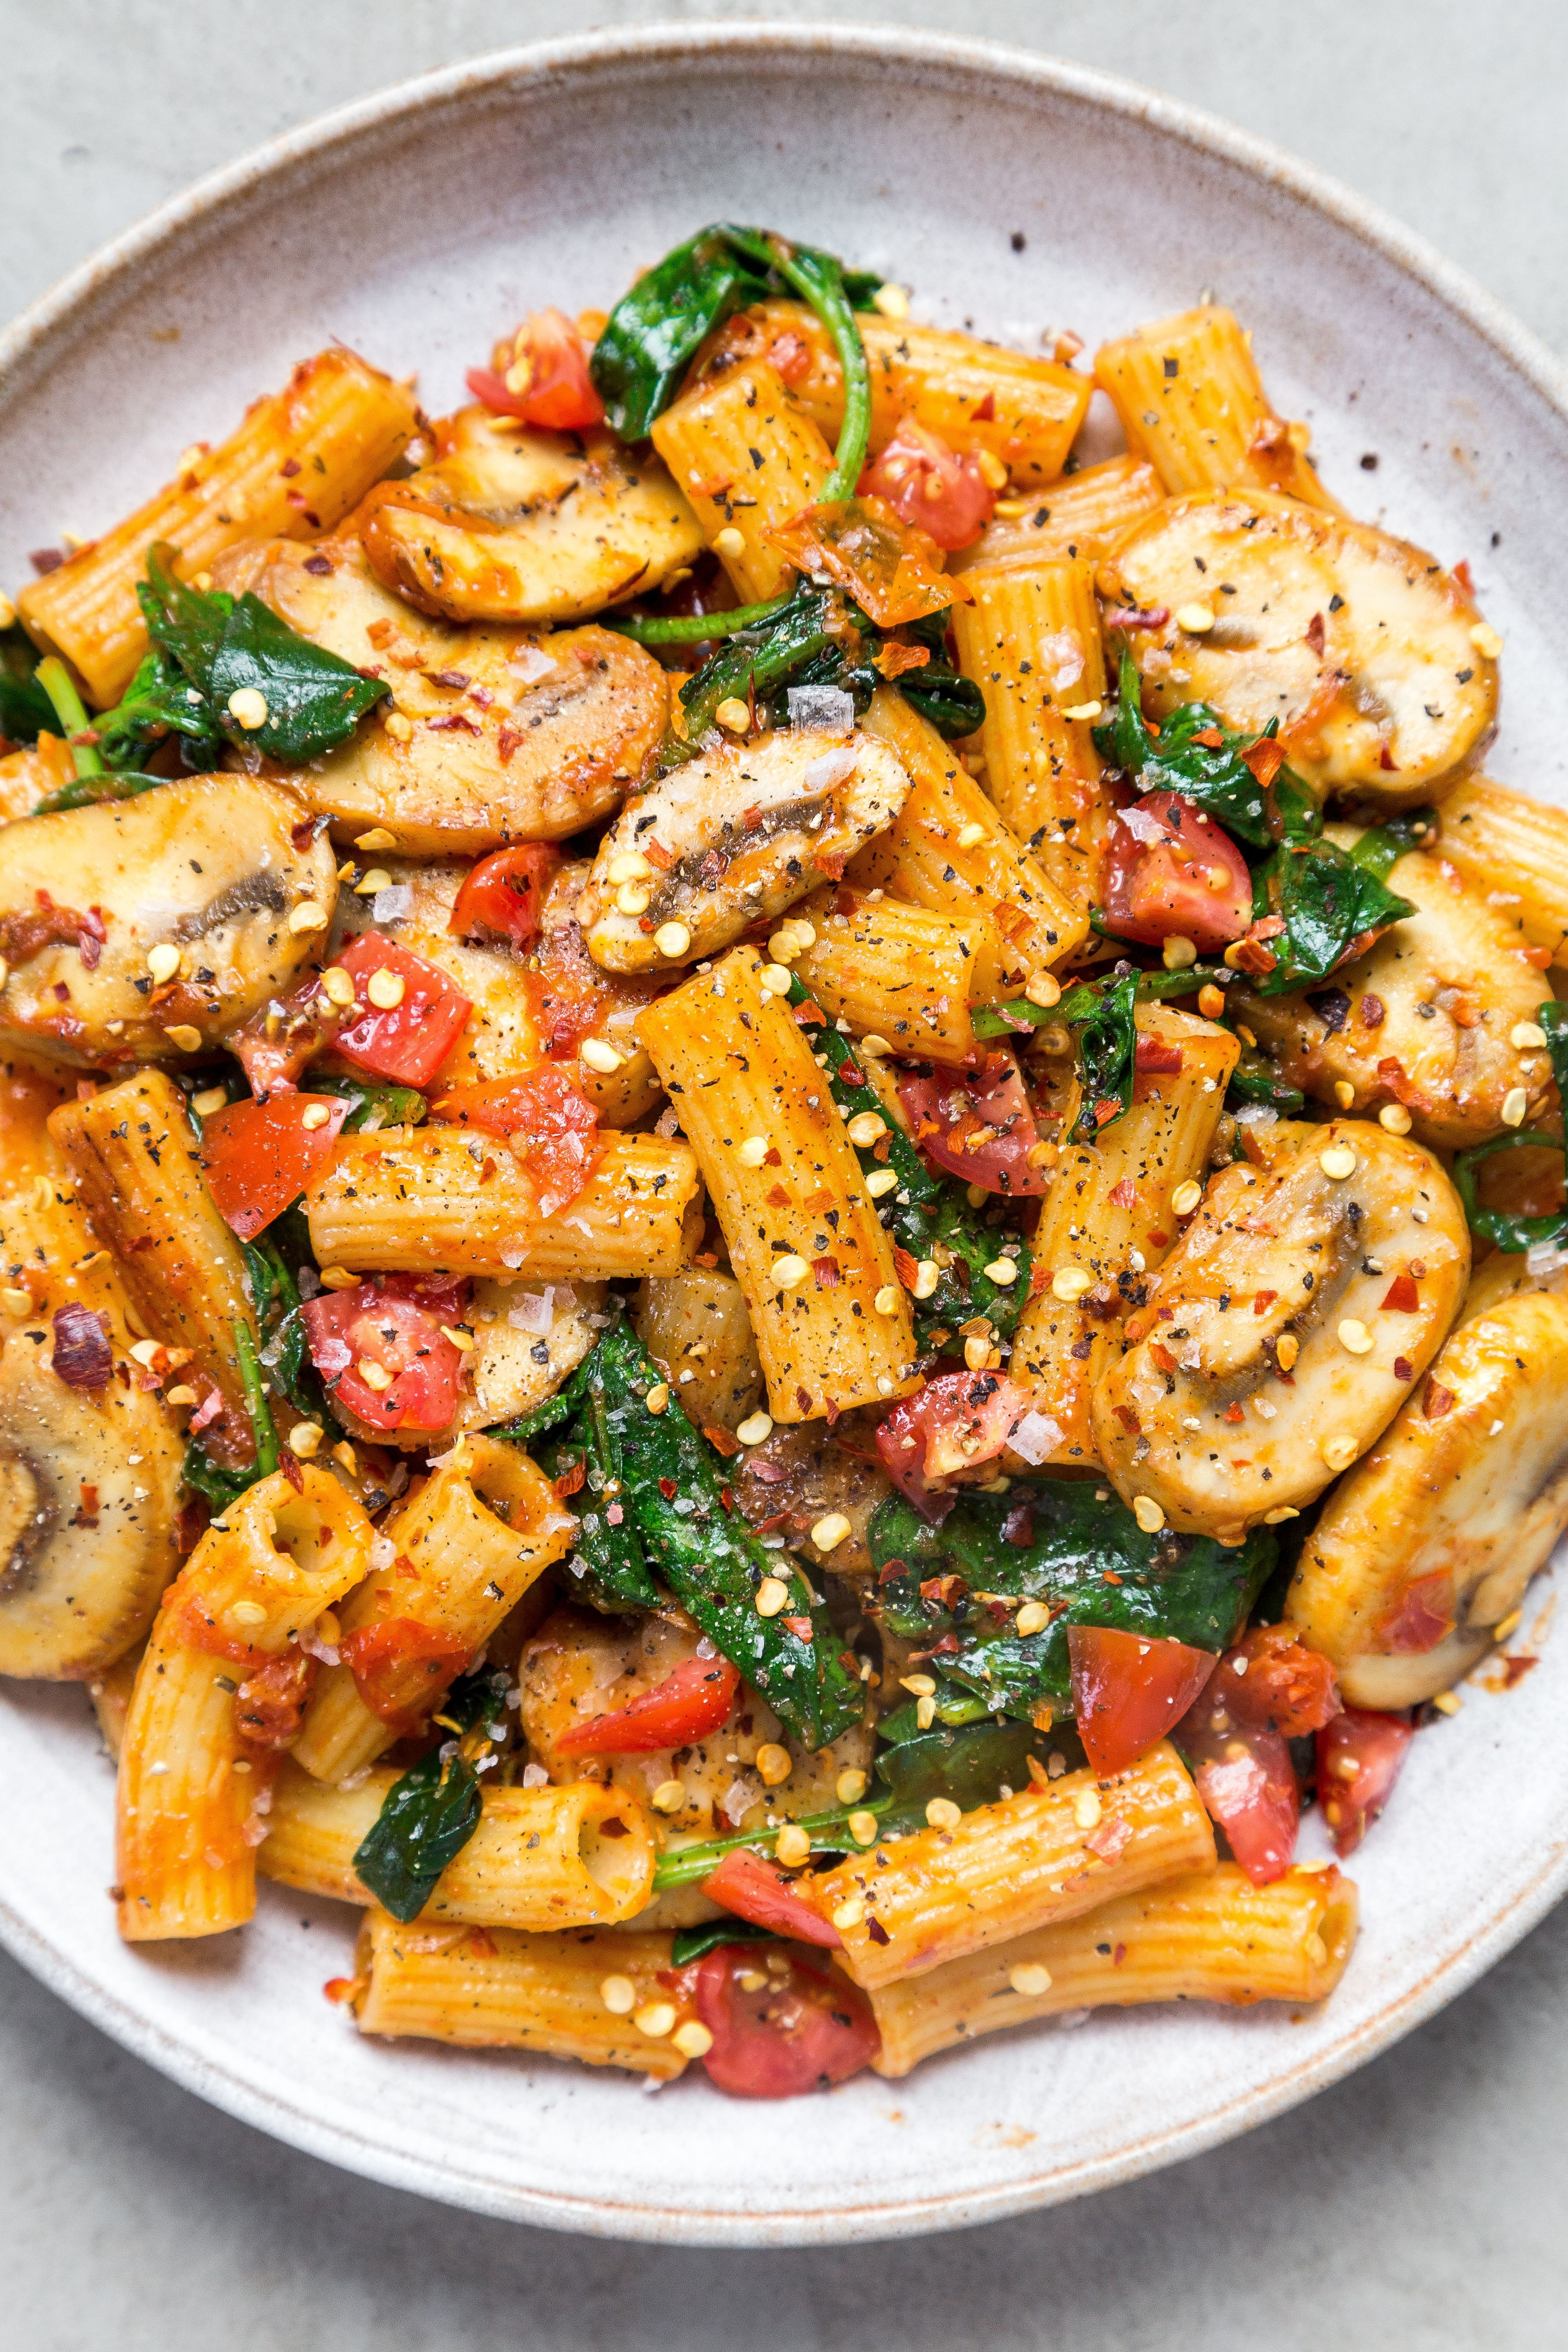 Speedy Tomato Pasta - This pasta is such a perfect mid-week dinner, it's so quick to make and uses really simple ingredients. Best Picture For weight workout For Your Taste You are looking for something, and it is going to tell you exactly what you are looking for, and you didn't find that picture. Here you will find the most beautiful picture that will fascinate you when called weight at home . When you look at our dashboard, you can see that the number of pictures in our account with pap